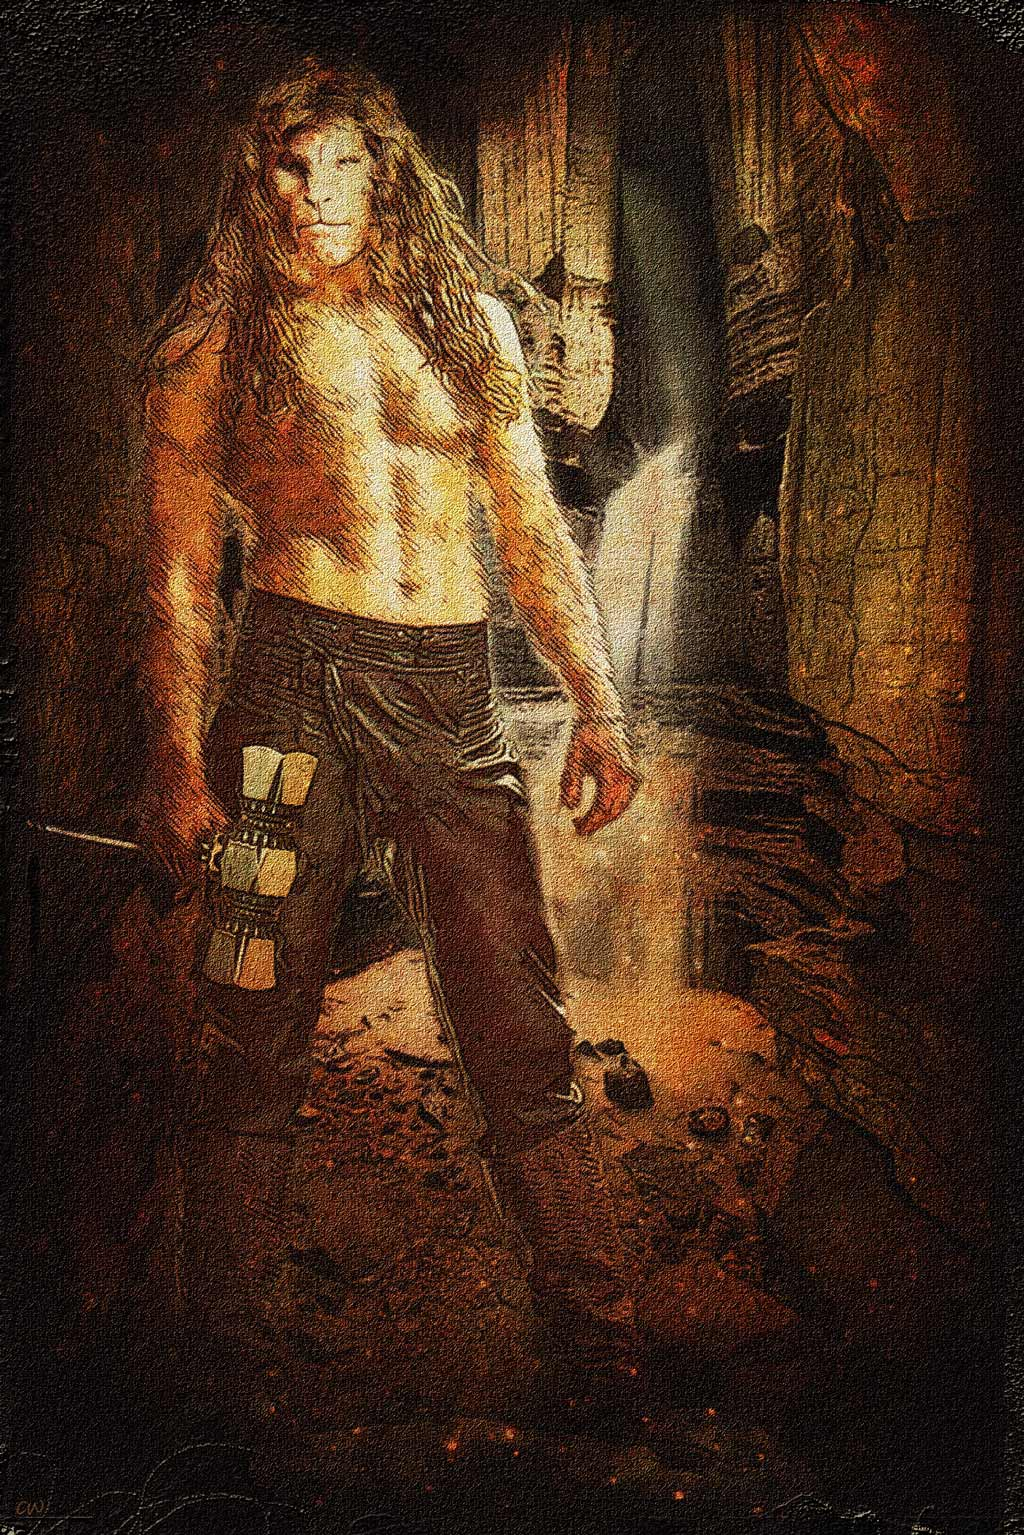 Vincent shirtless, carrying a hammer, standing on a rock in a deep cavern